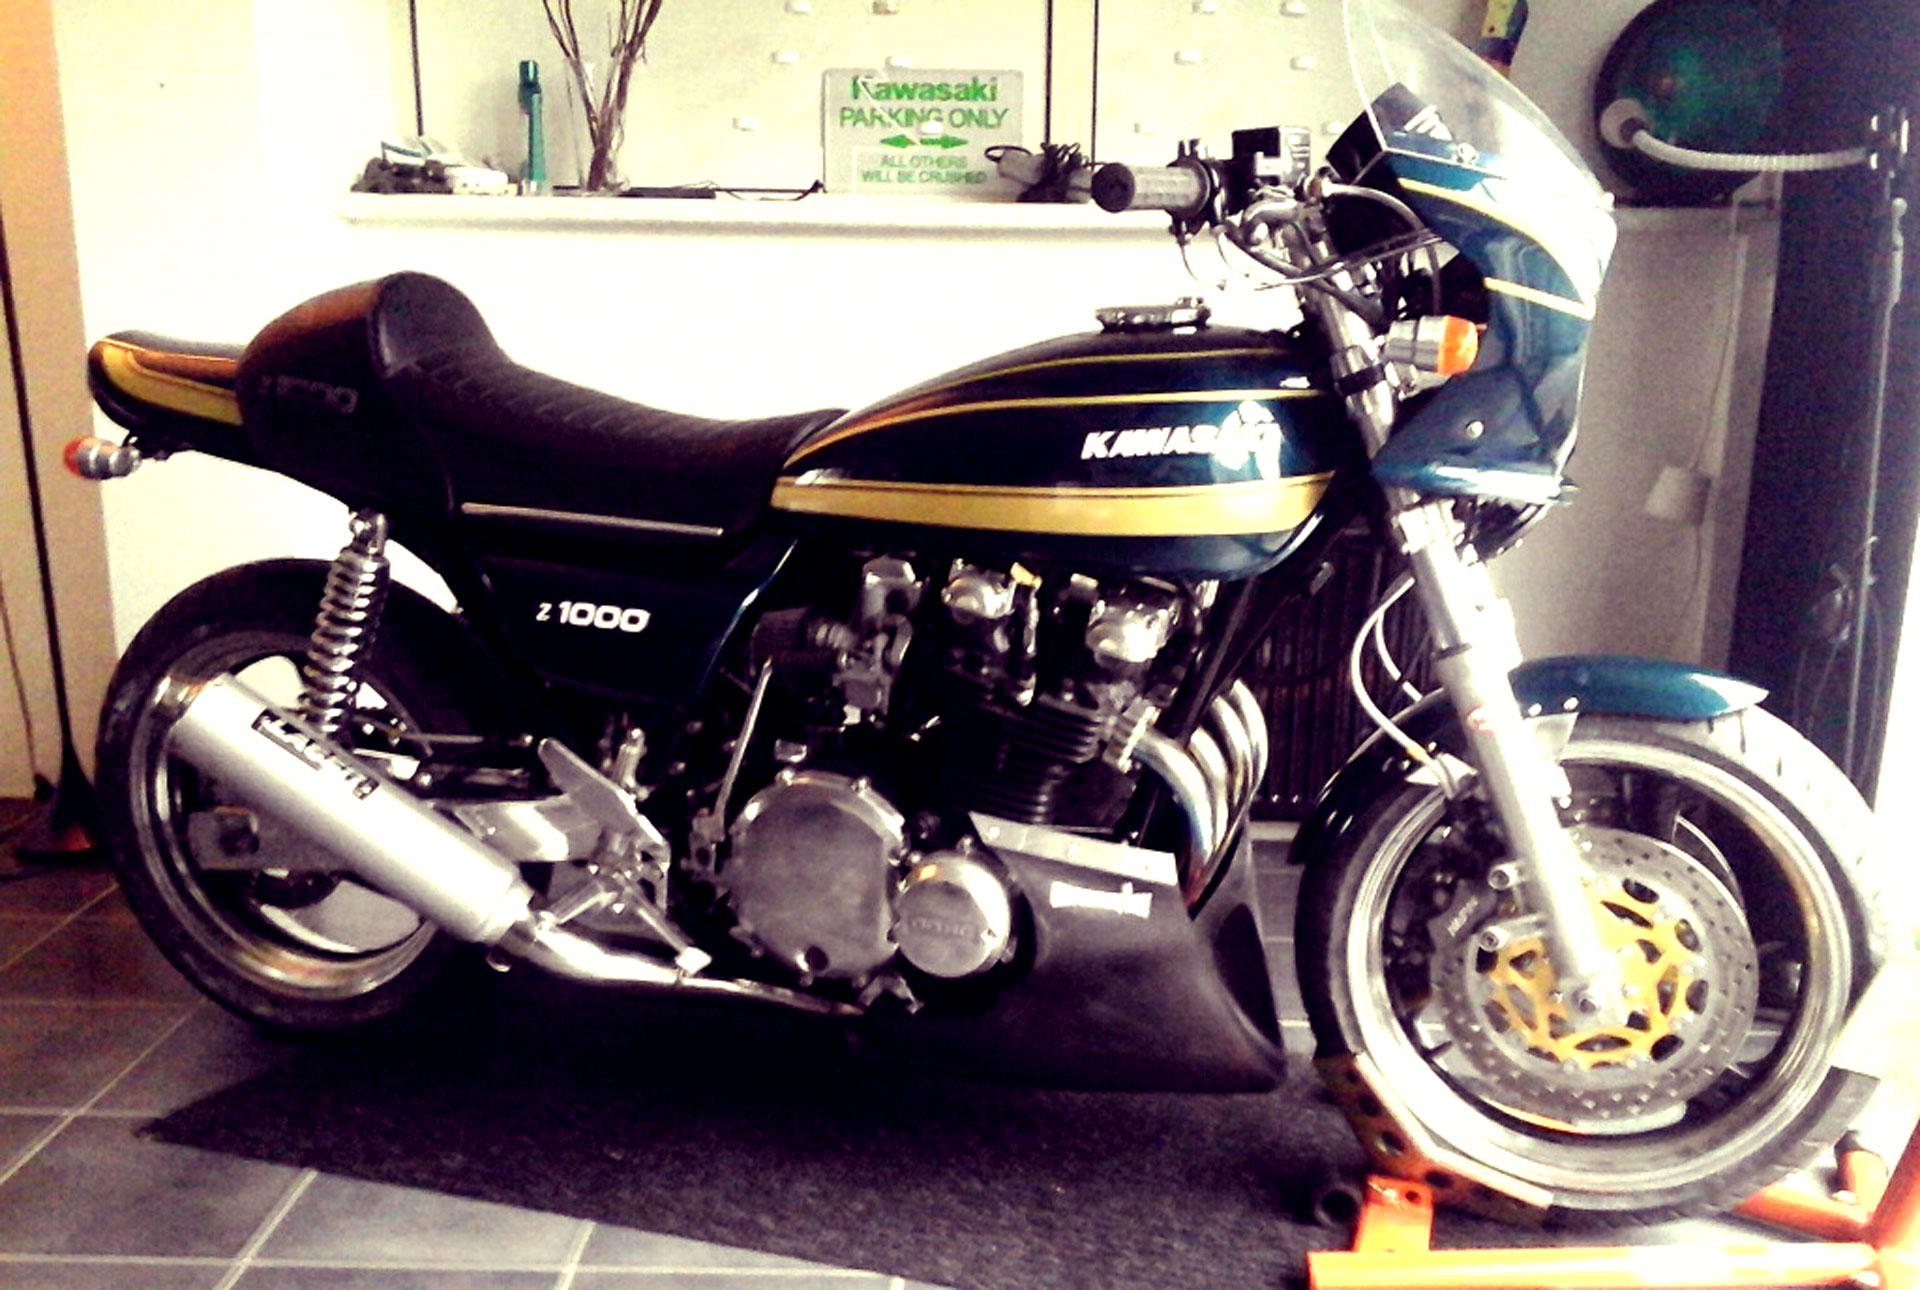 Frame and Kawasaki z1000